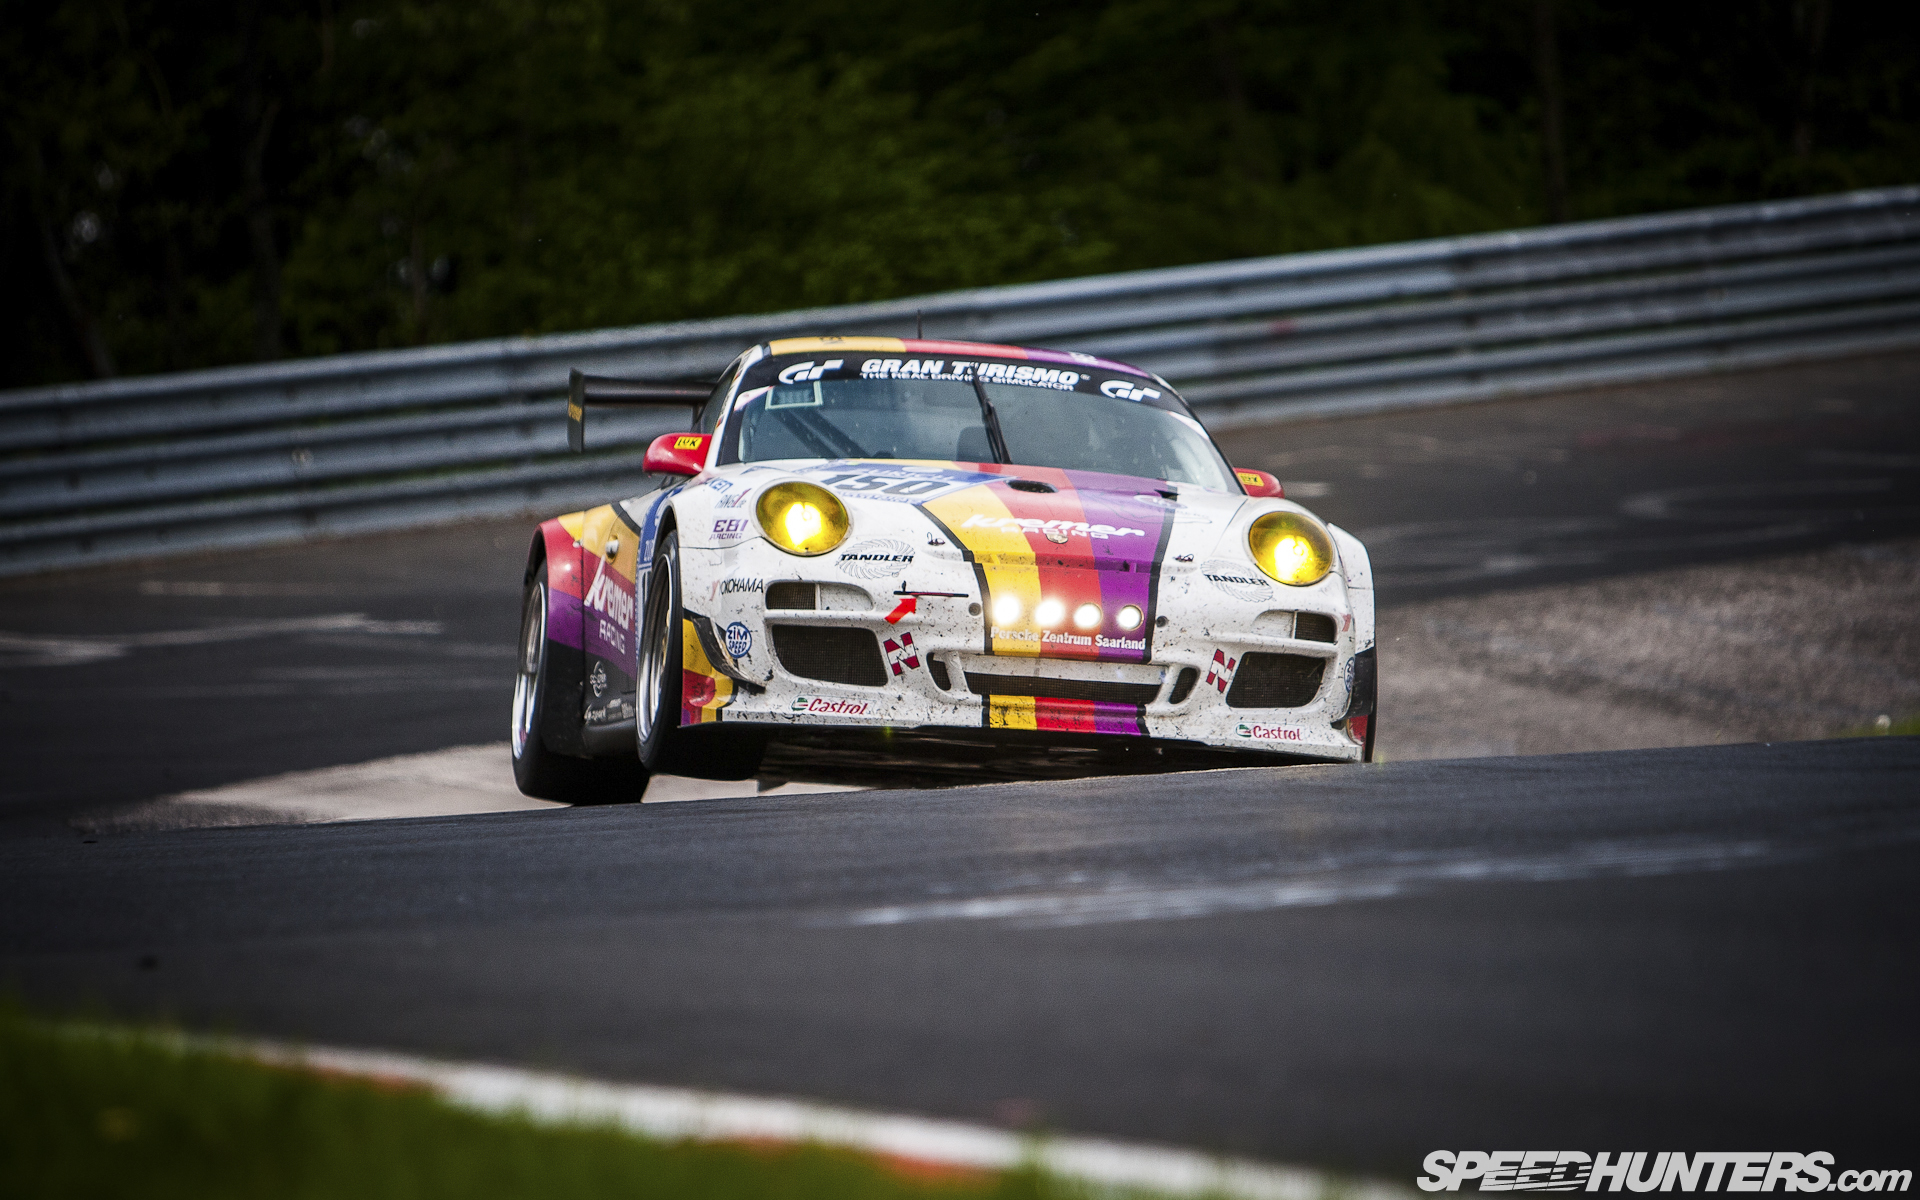 Riding The Carousel One Last Time Desktops Speedhunters